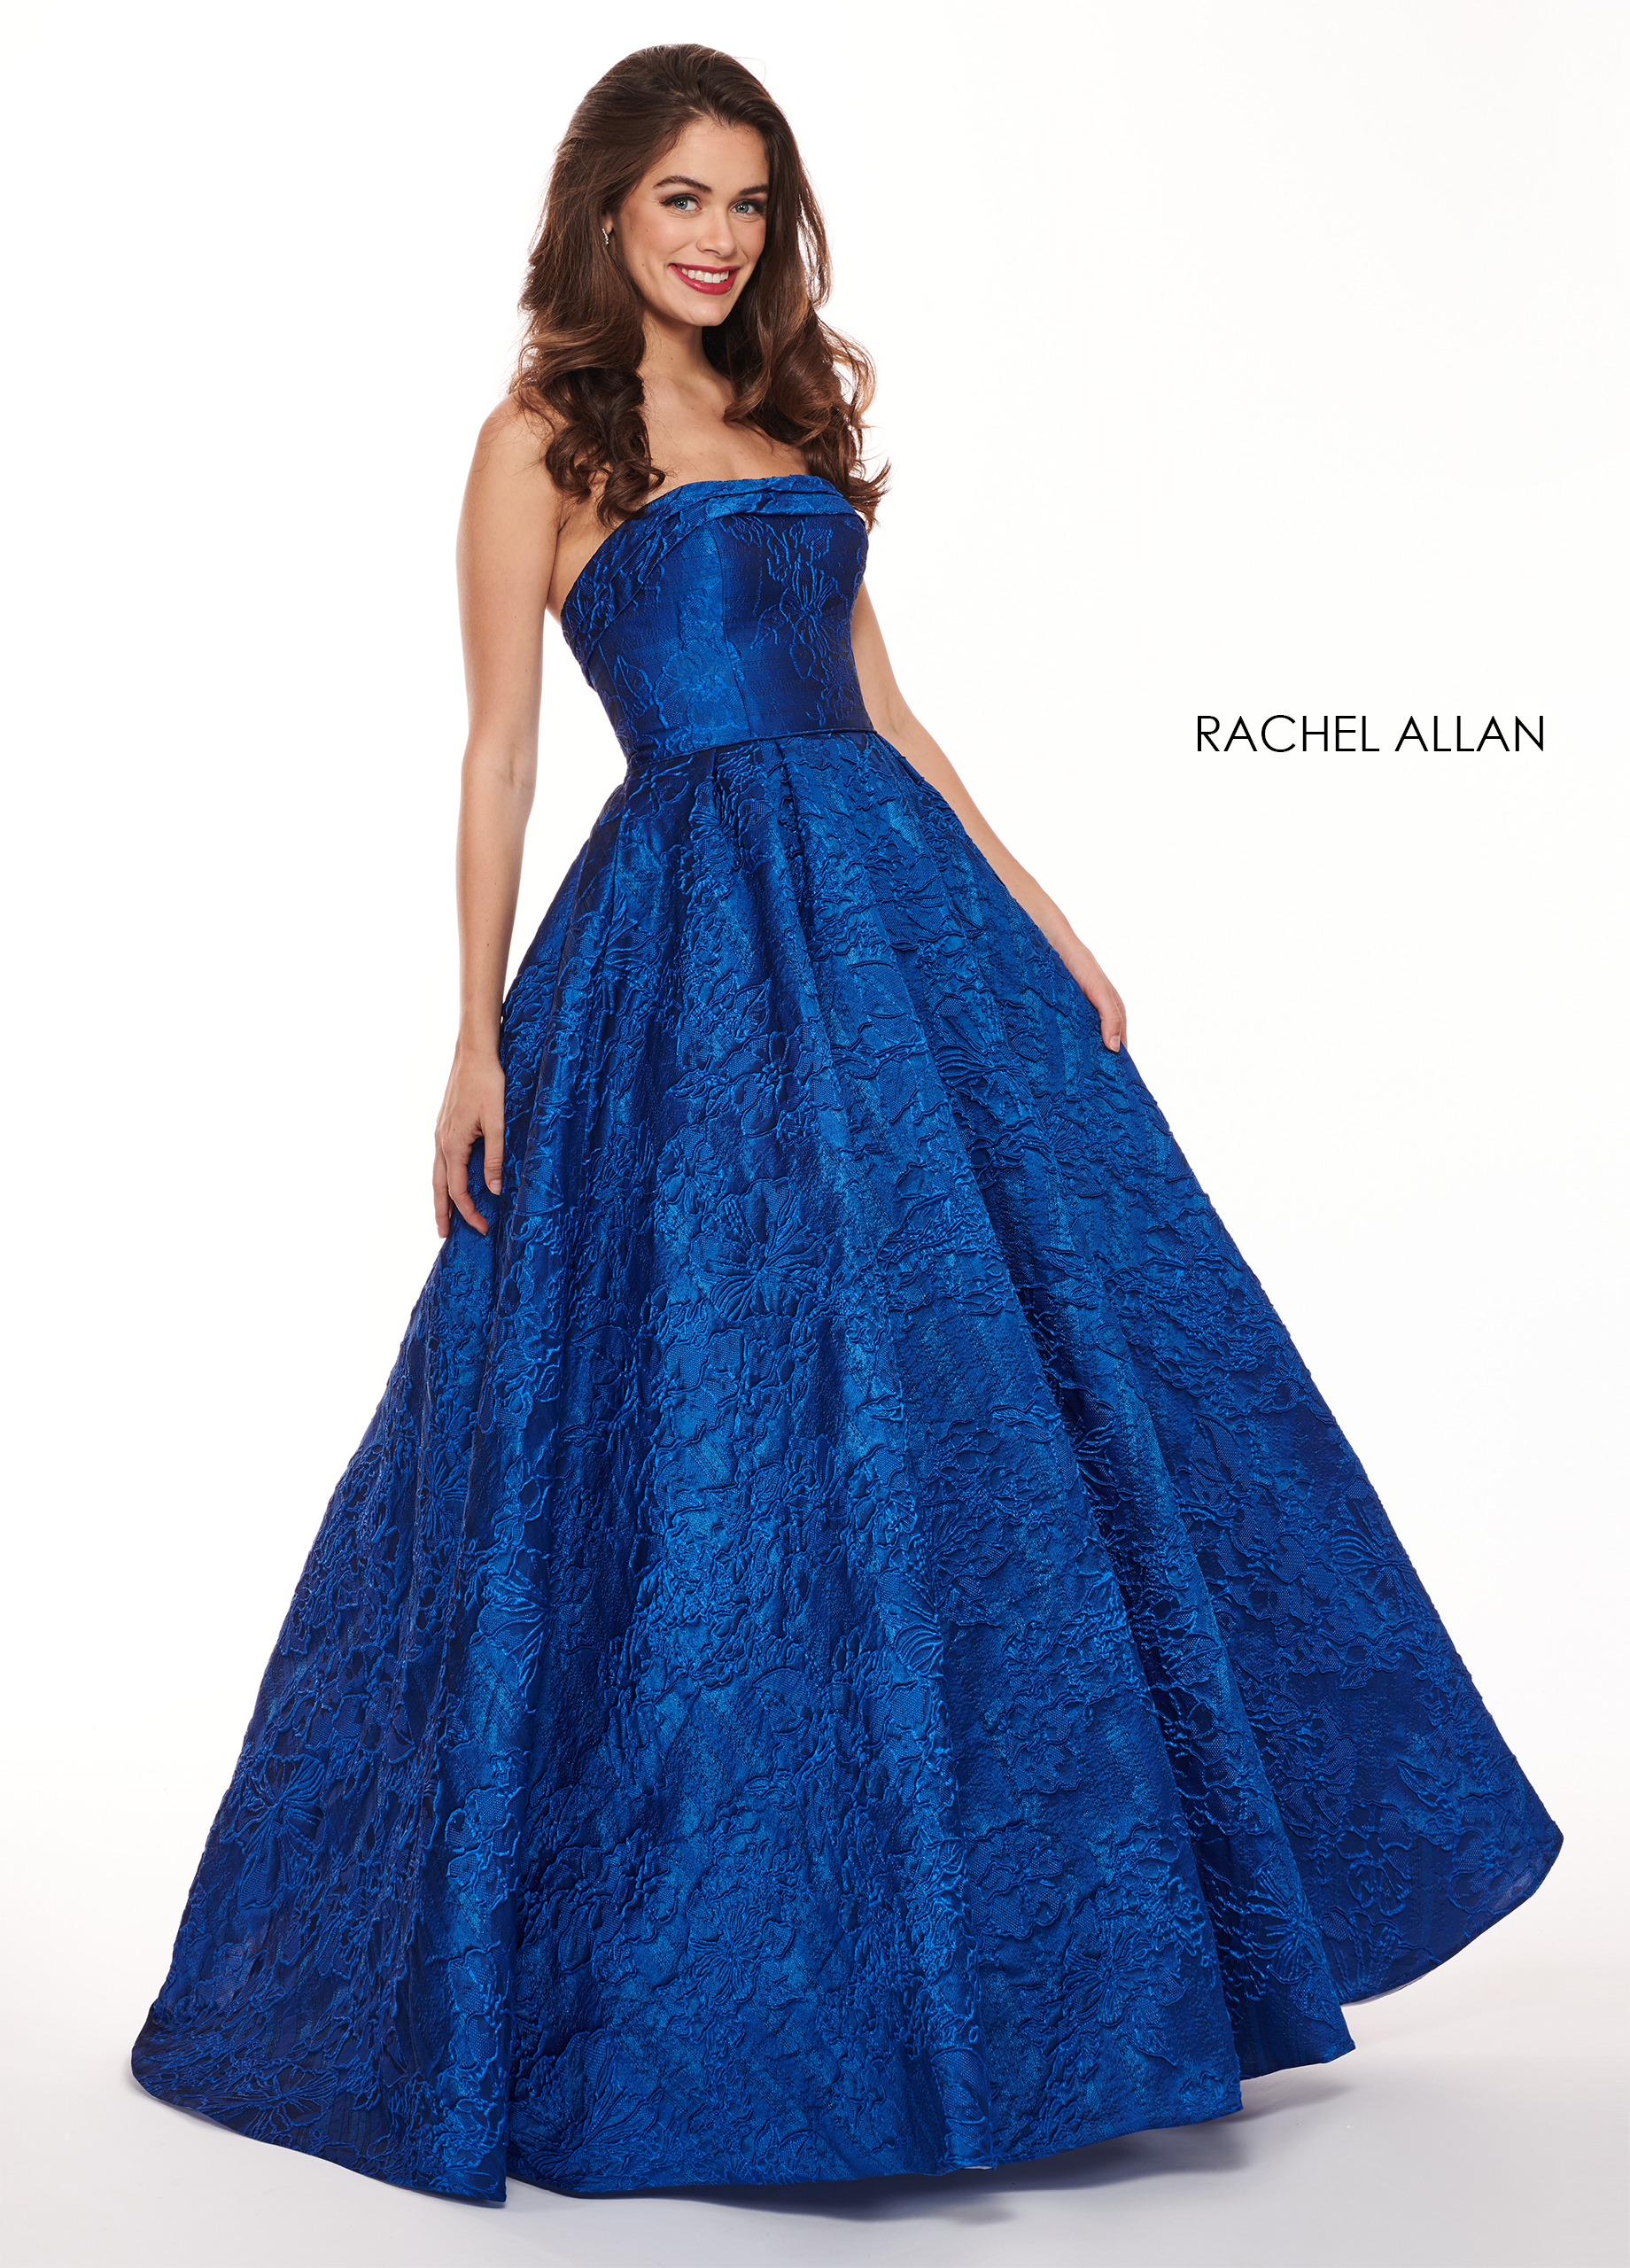 Strapless Ball Gowns Prom Dresses in Royal Color